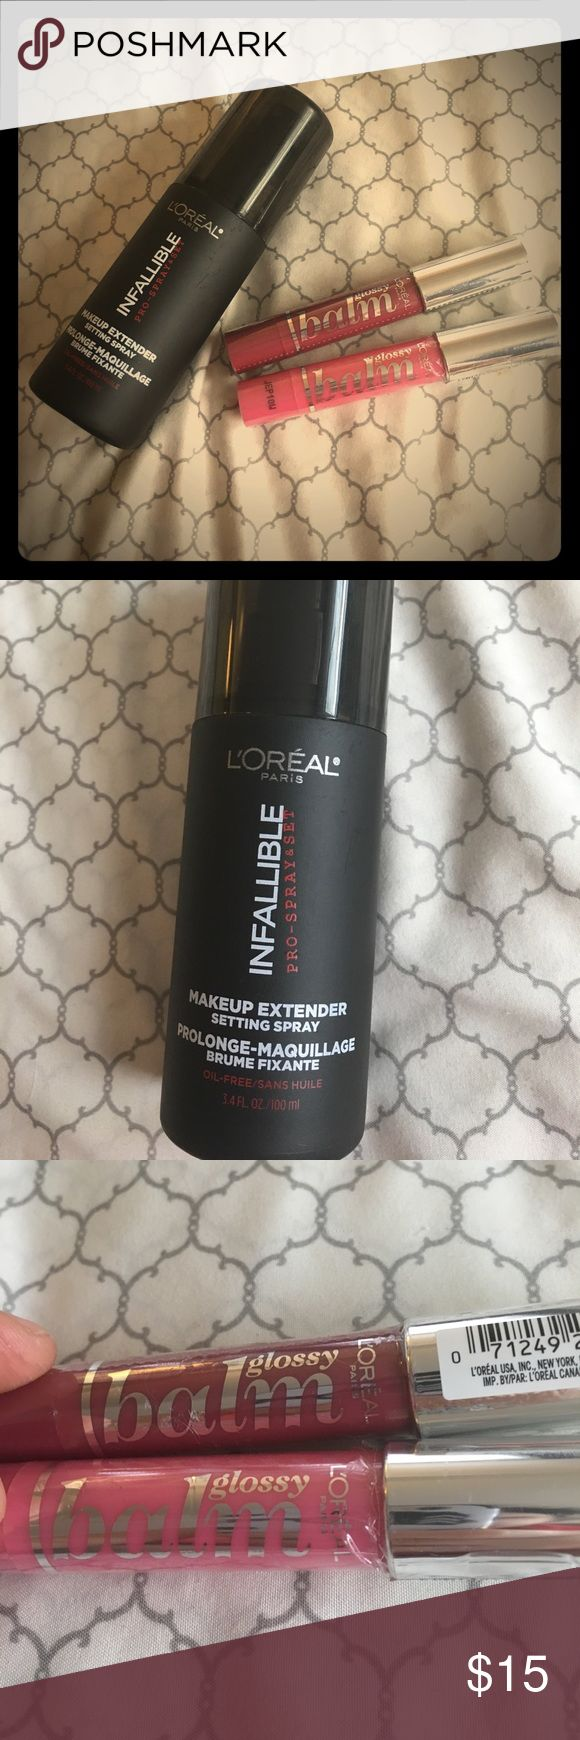 L'Oréal make up beauty bundle 💄💋👄 All brand new products! L'Oreal Makeup Face Primer